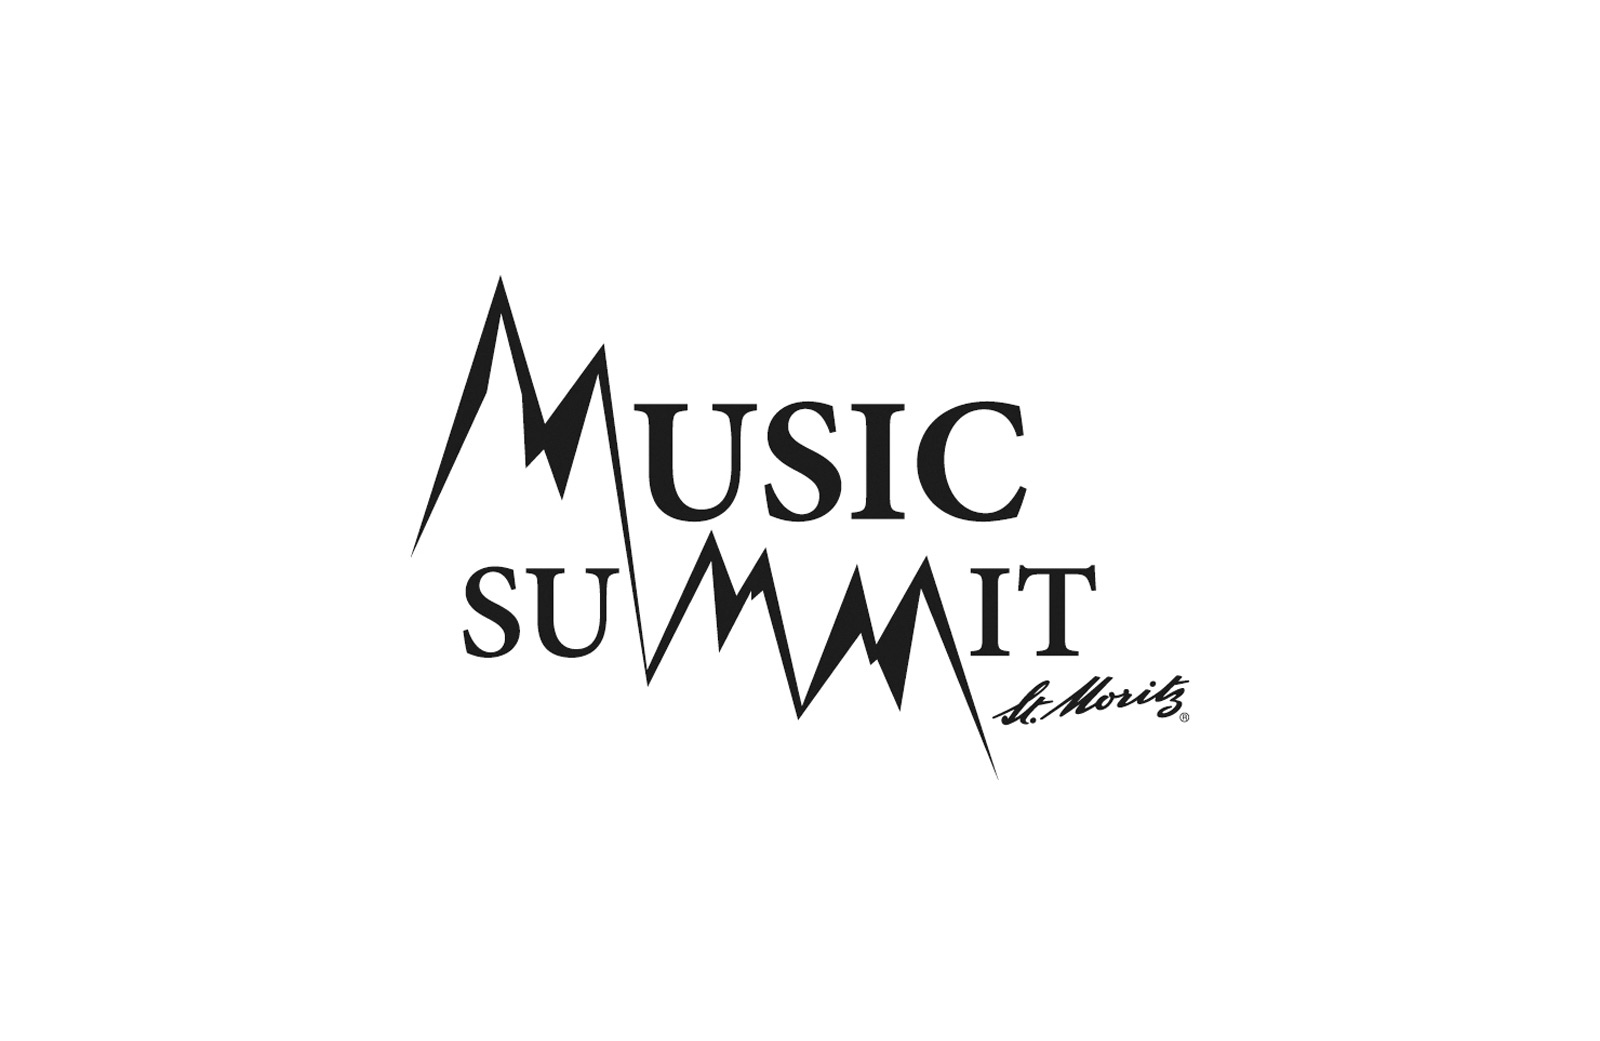 EMERALD MUSIC SUMMIT